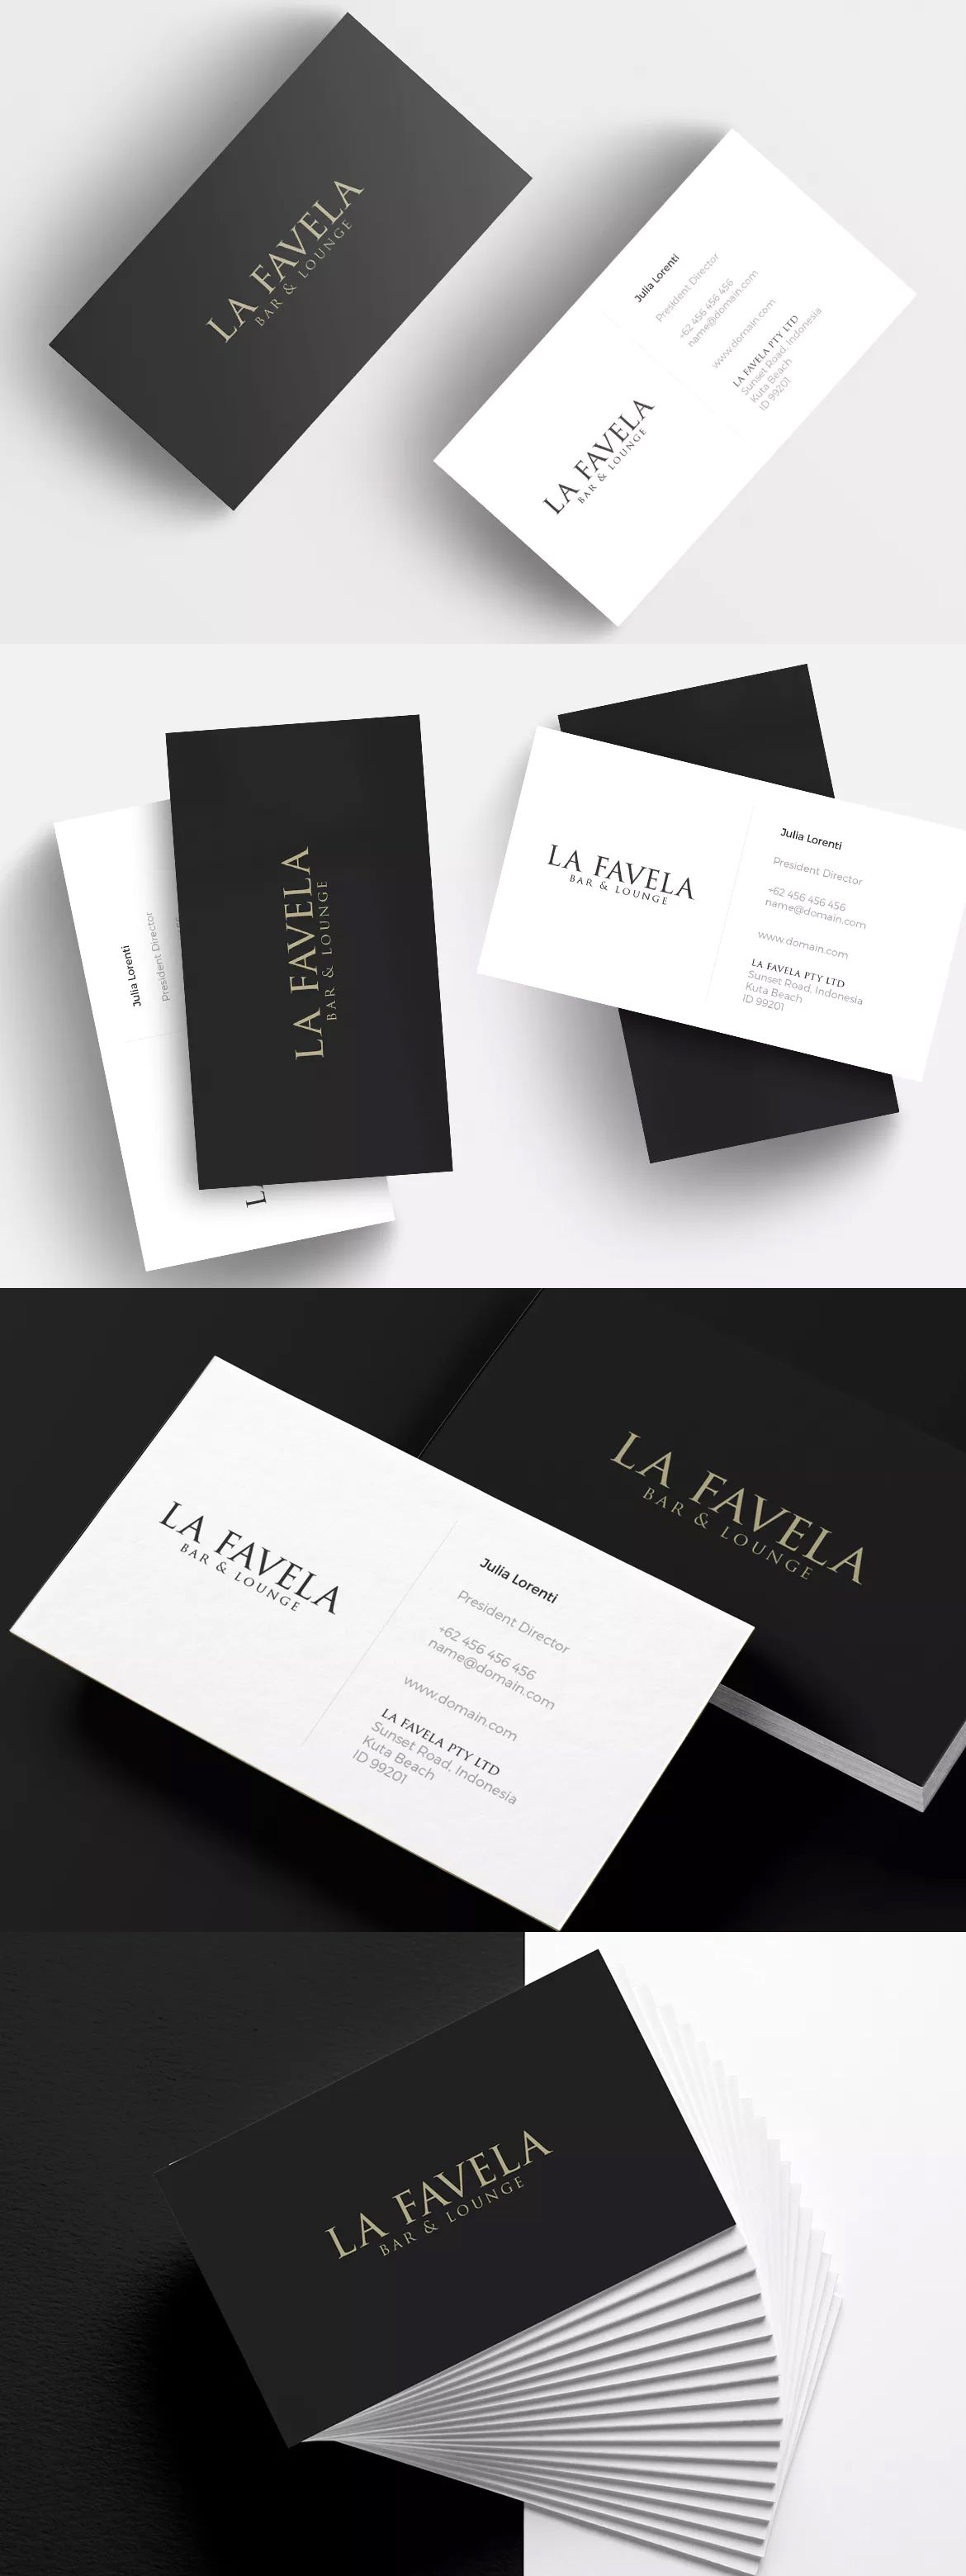 Minimal Business Card Restaurant By Micromove On Business Card